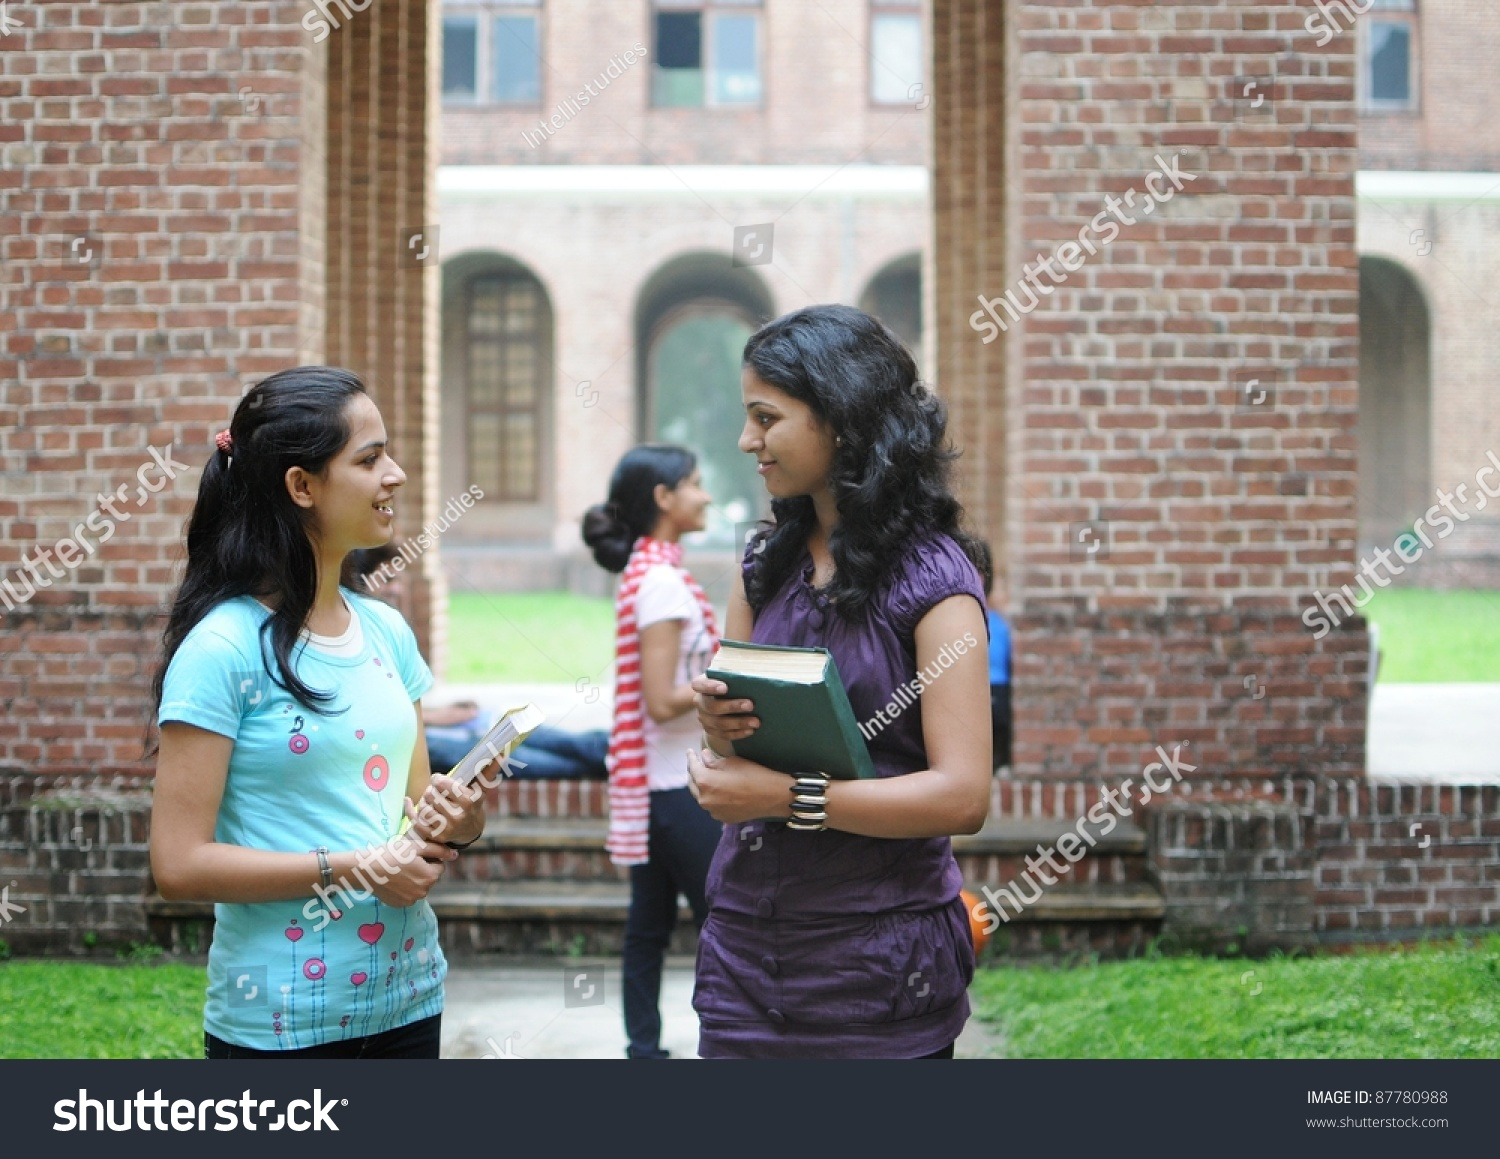 royalty-free two indian college girls talking to… #87780988 stock